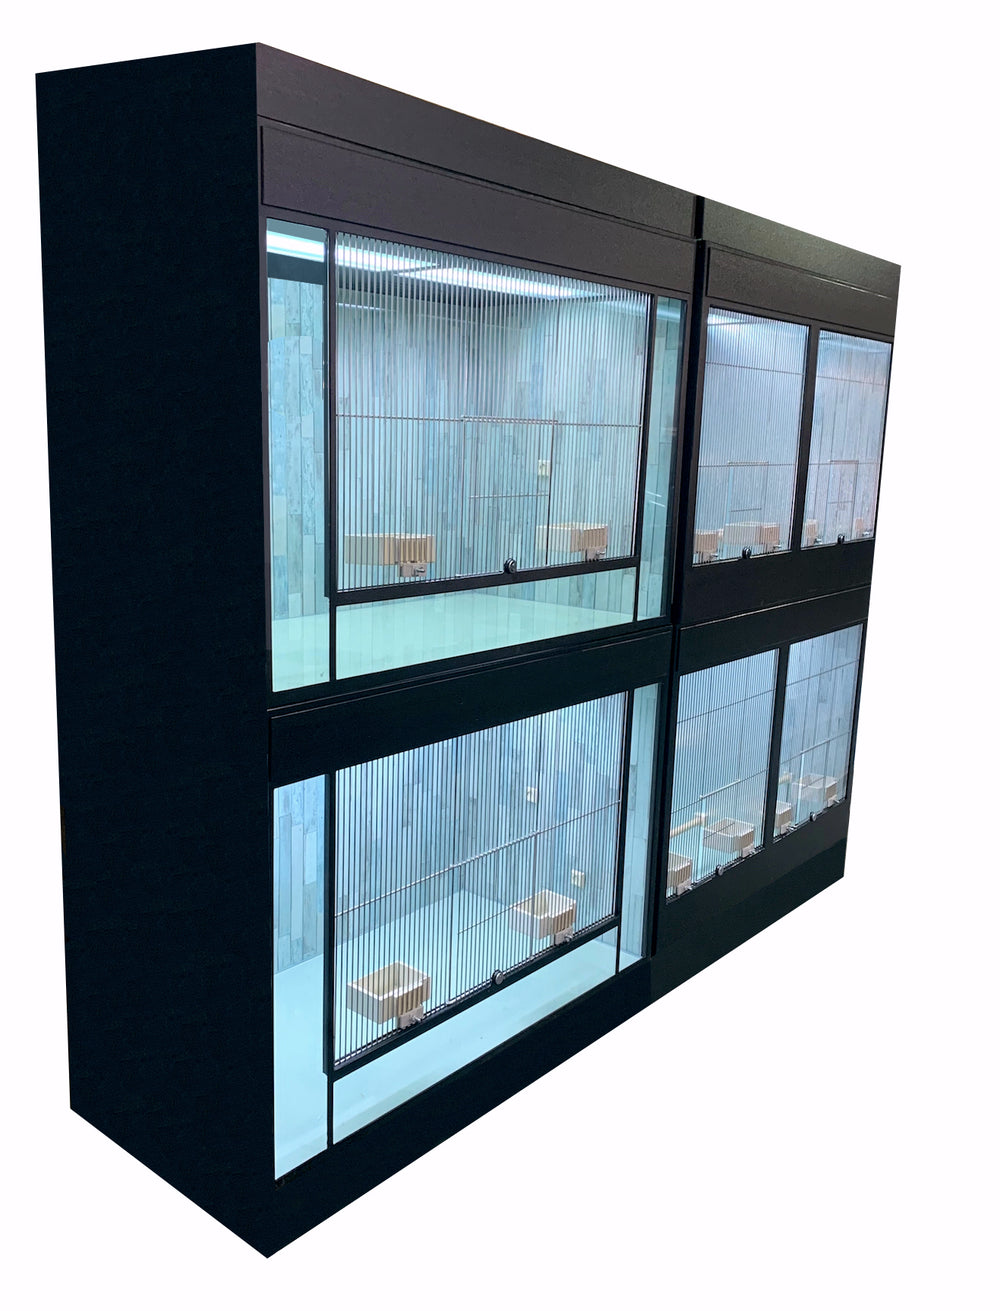 Commercial Bird Aviaries Bird Rack Systems for Retail